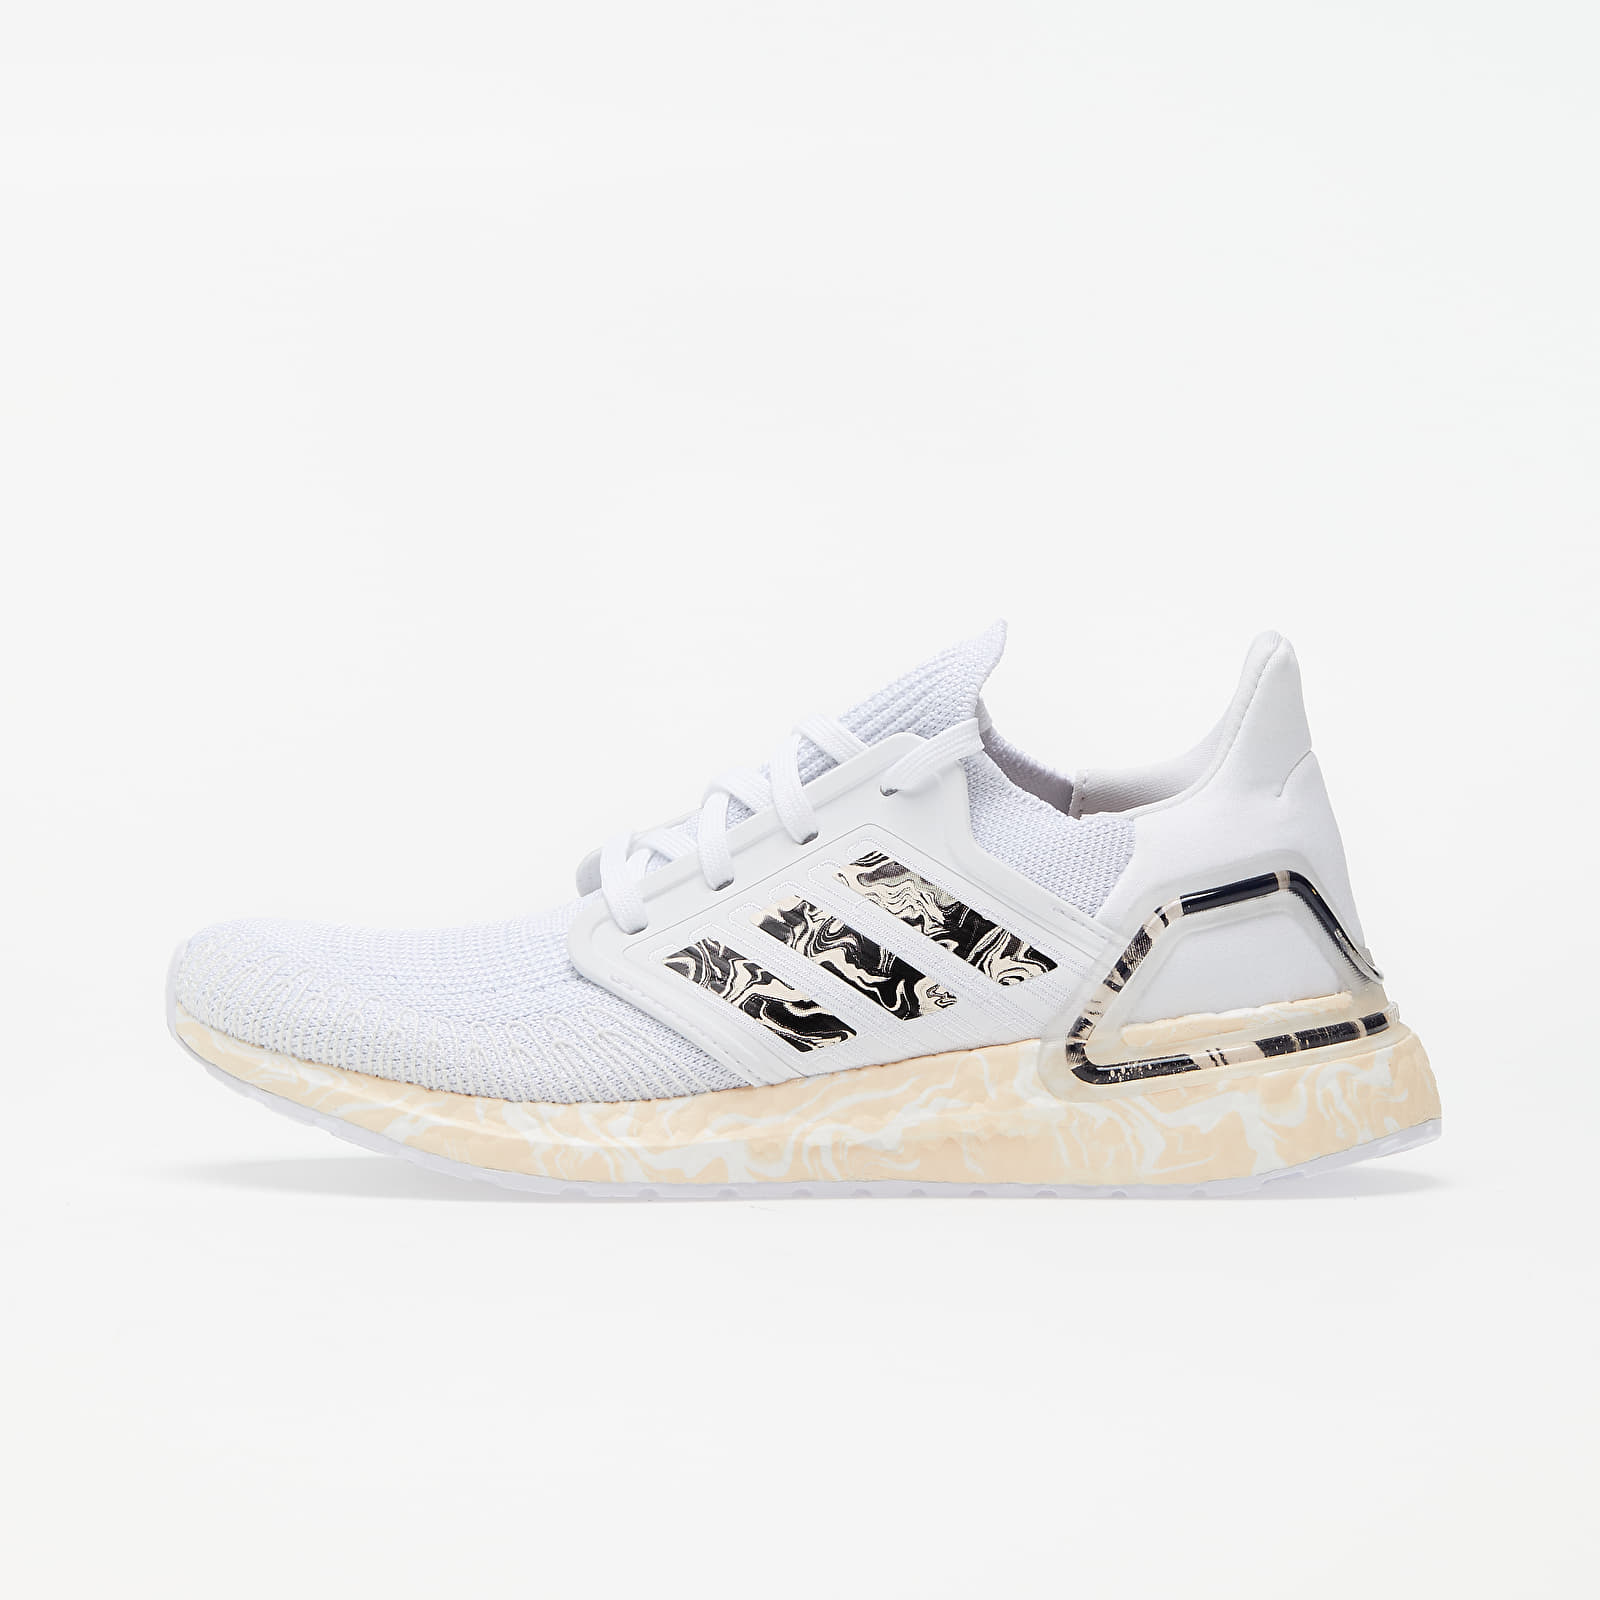 adidas UltraBOOST 20 W Ftw White/ Pink Tint/ Core Black FW5721